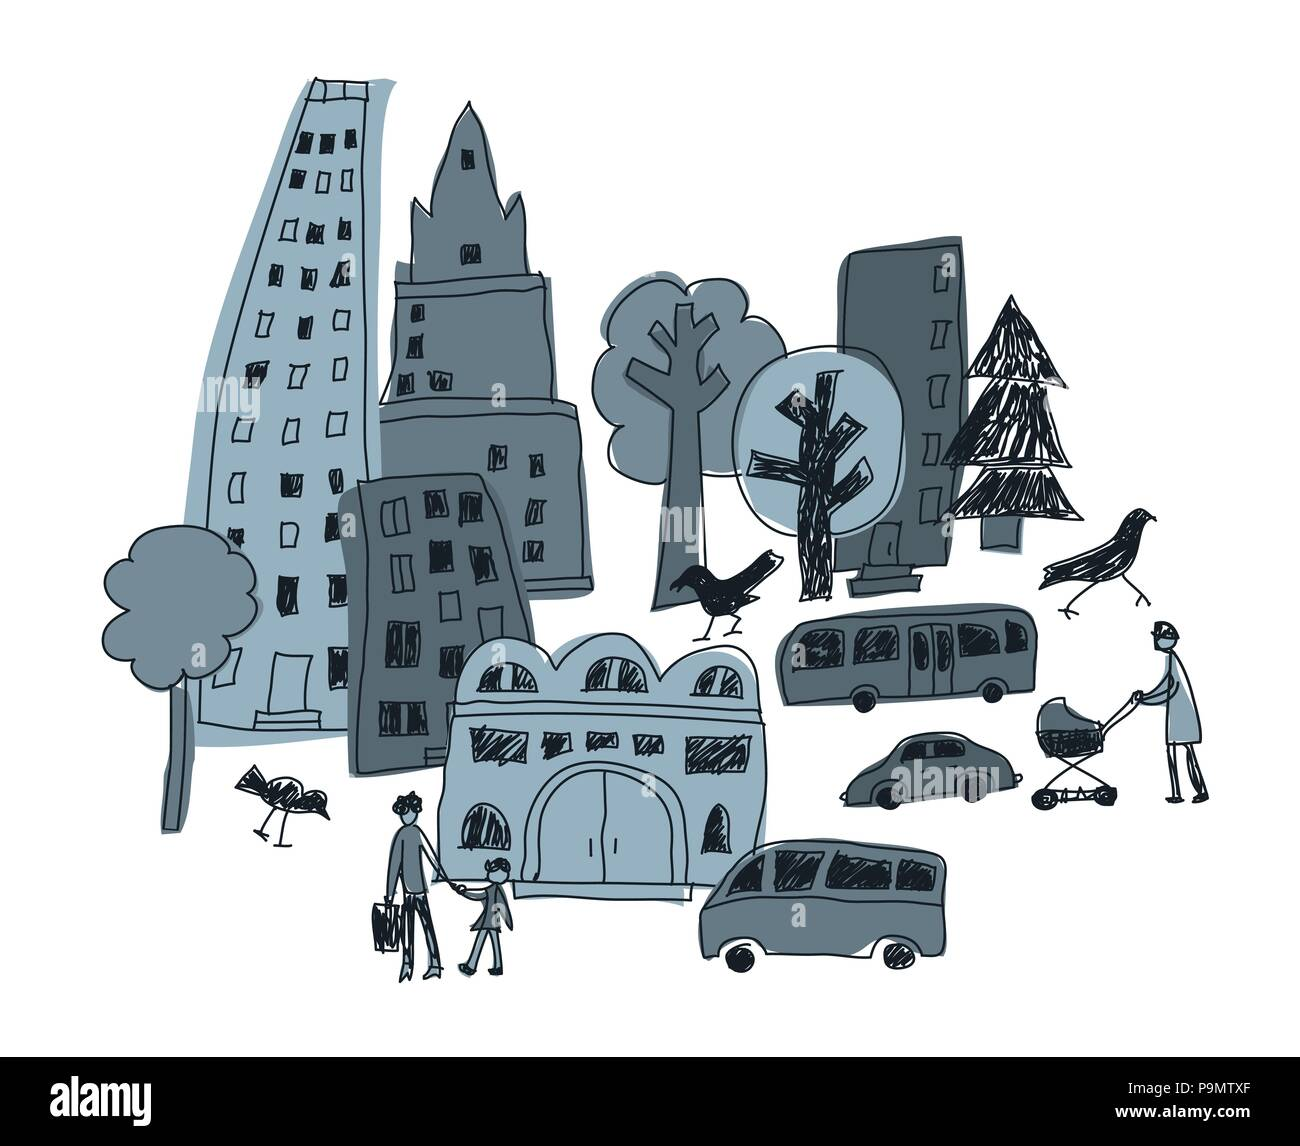 Doodles urban city abstract landscape and people - Stock Vector